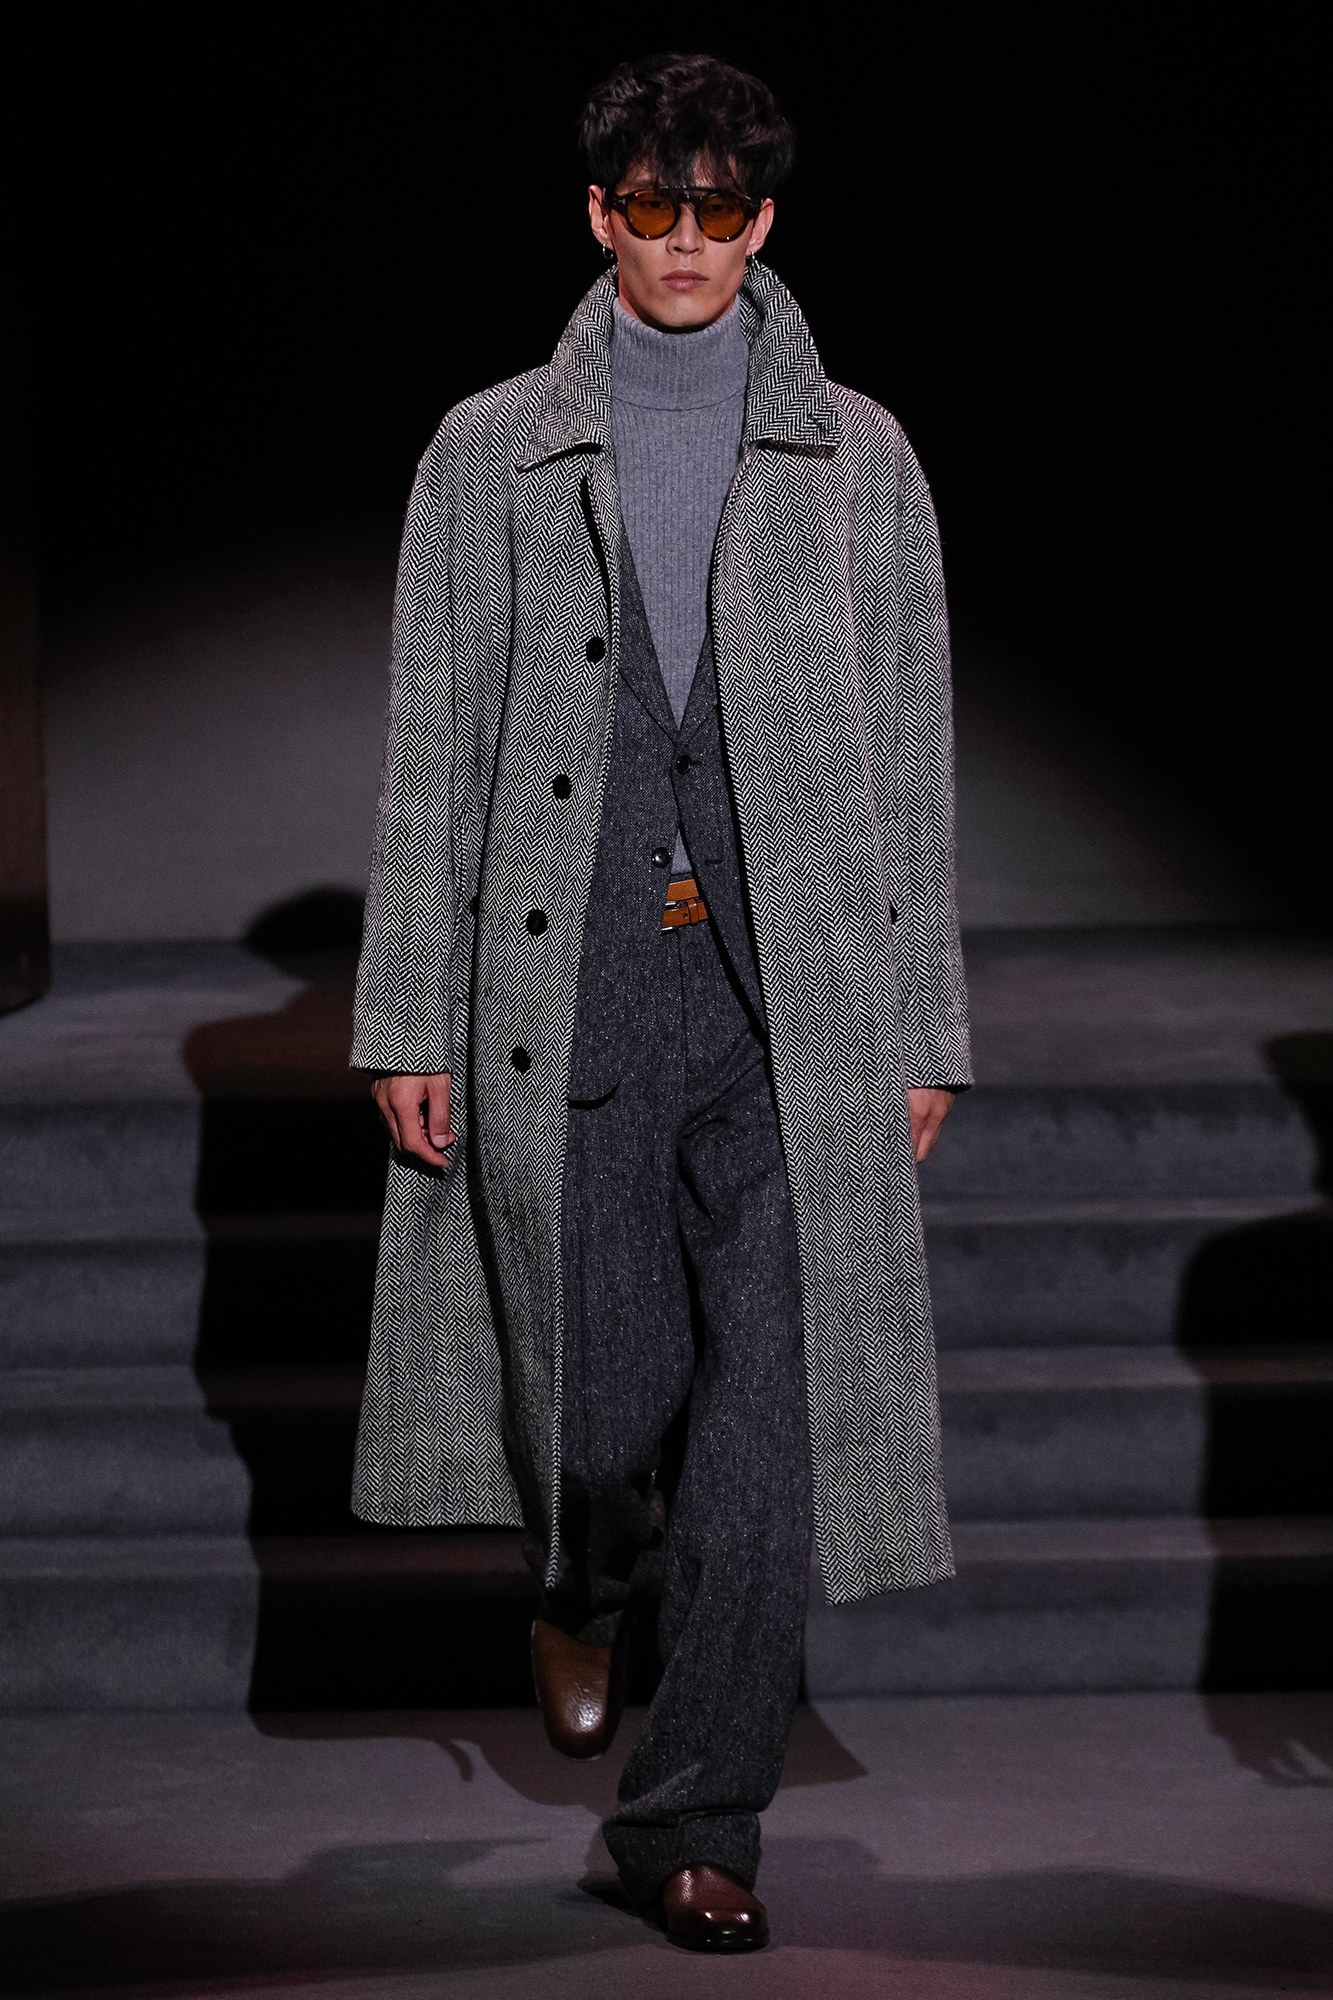 NYFW: Tom Ford Men's Fall/Winter 2016 Collection